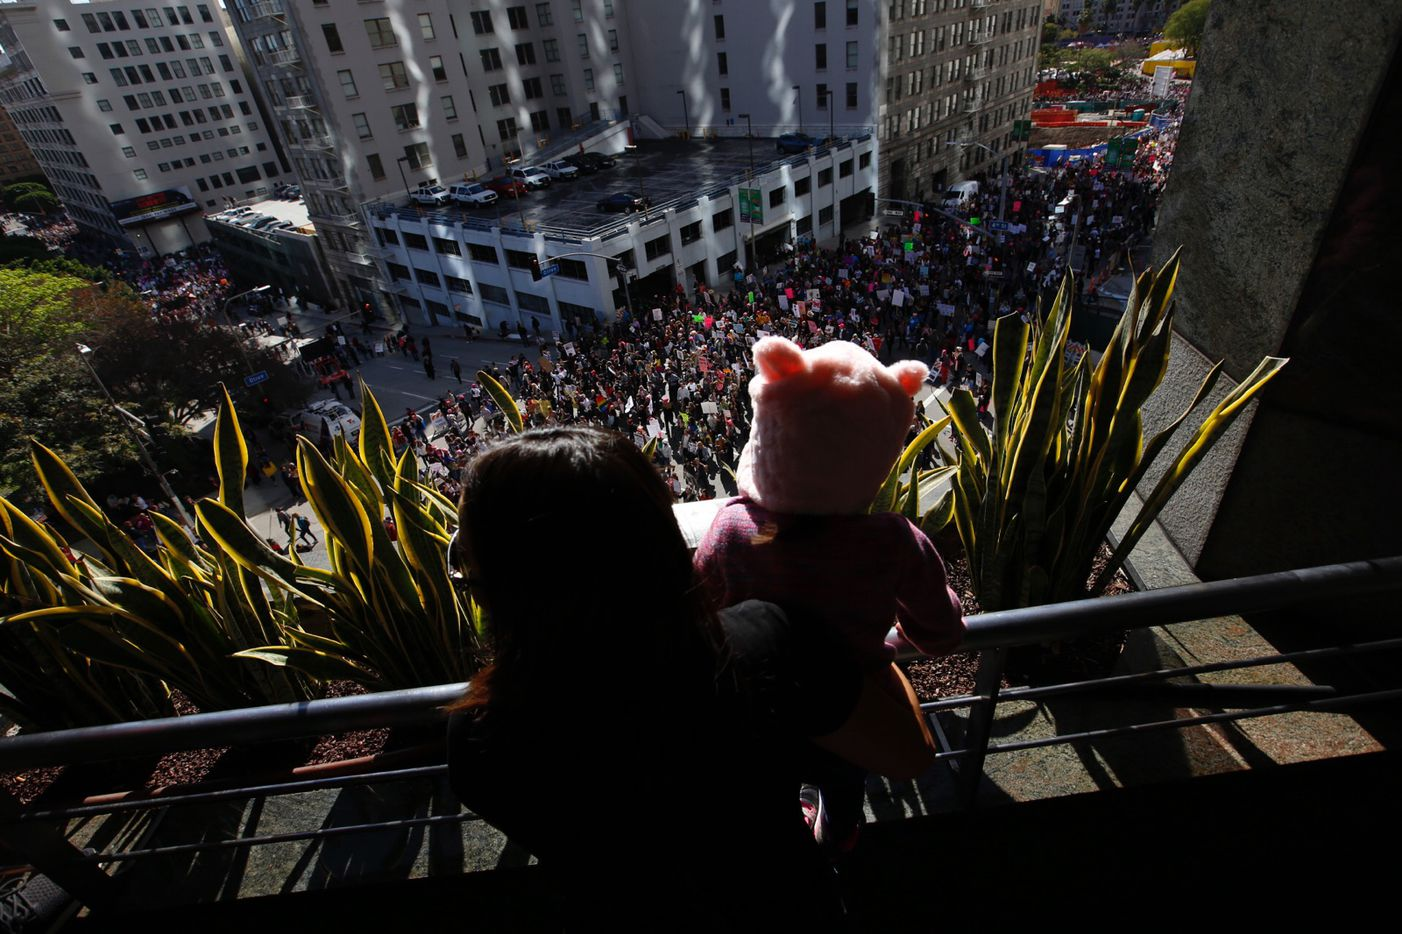 Gina Corpus and her daughter Camila, 2, watch the women's march in Los Angeles on Saturday, Jan. 21, 2017.